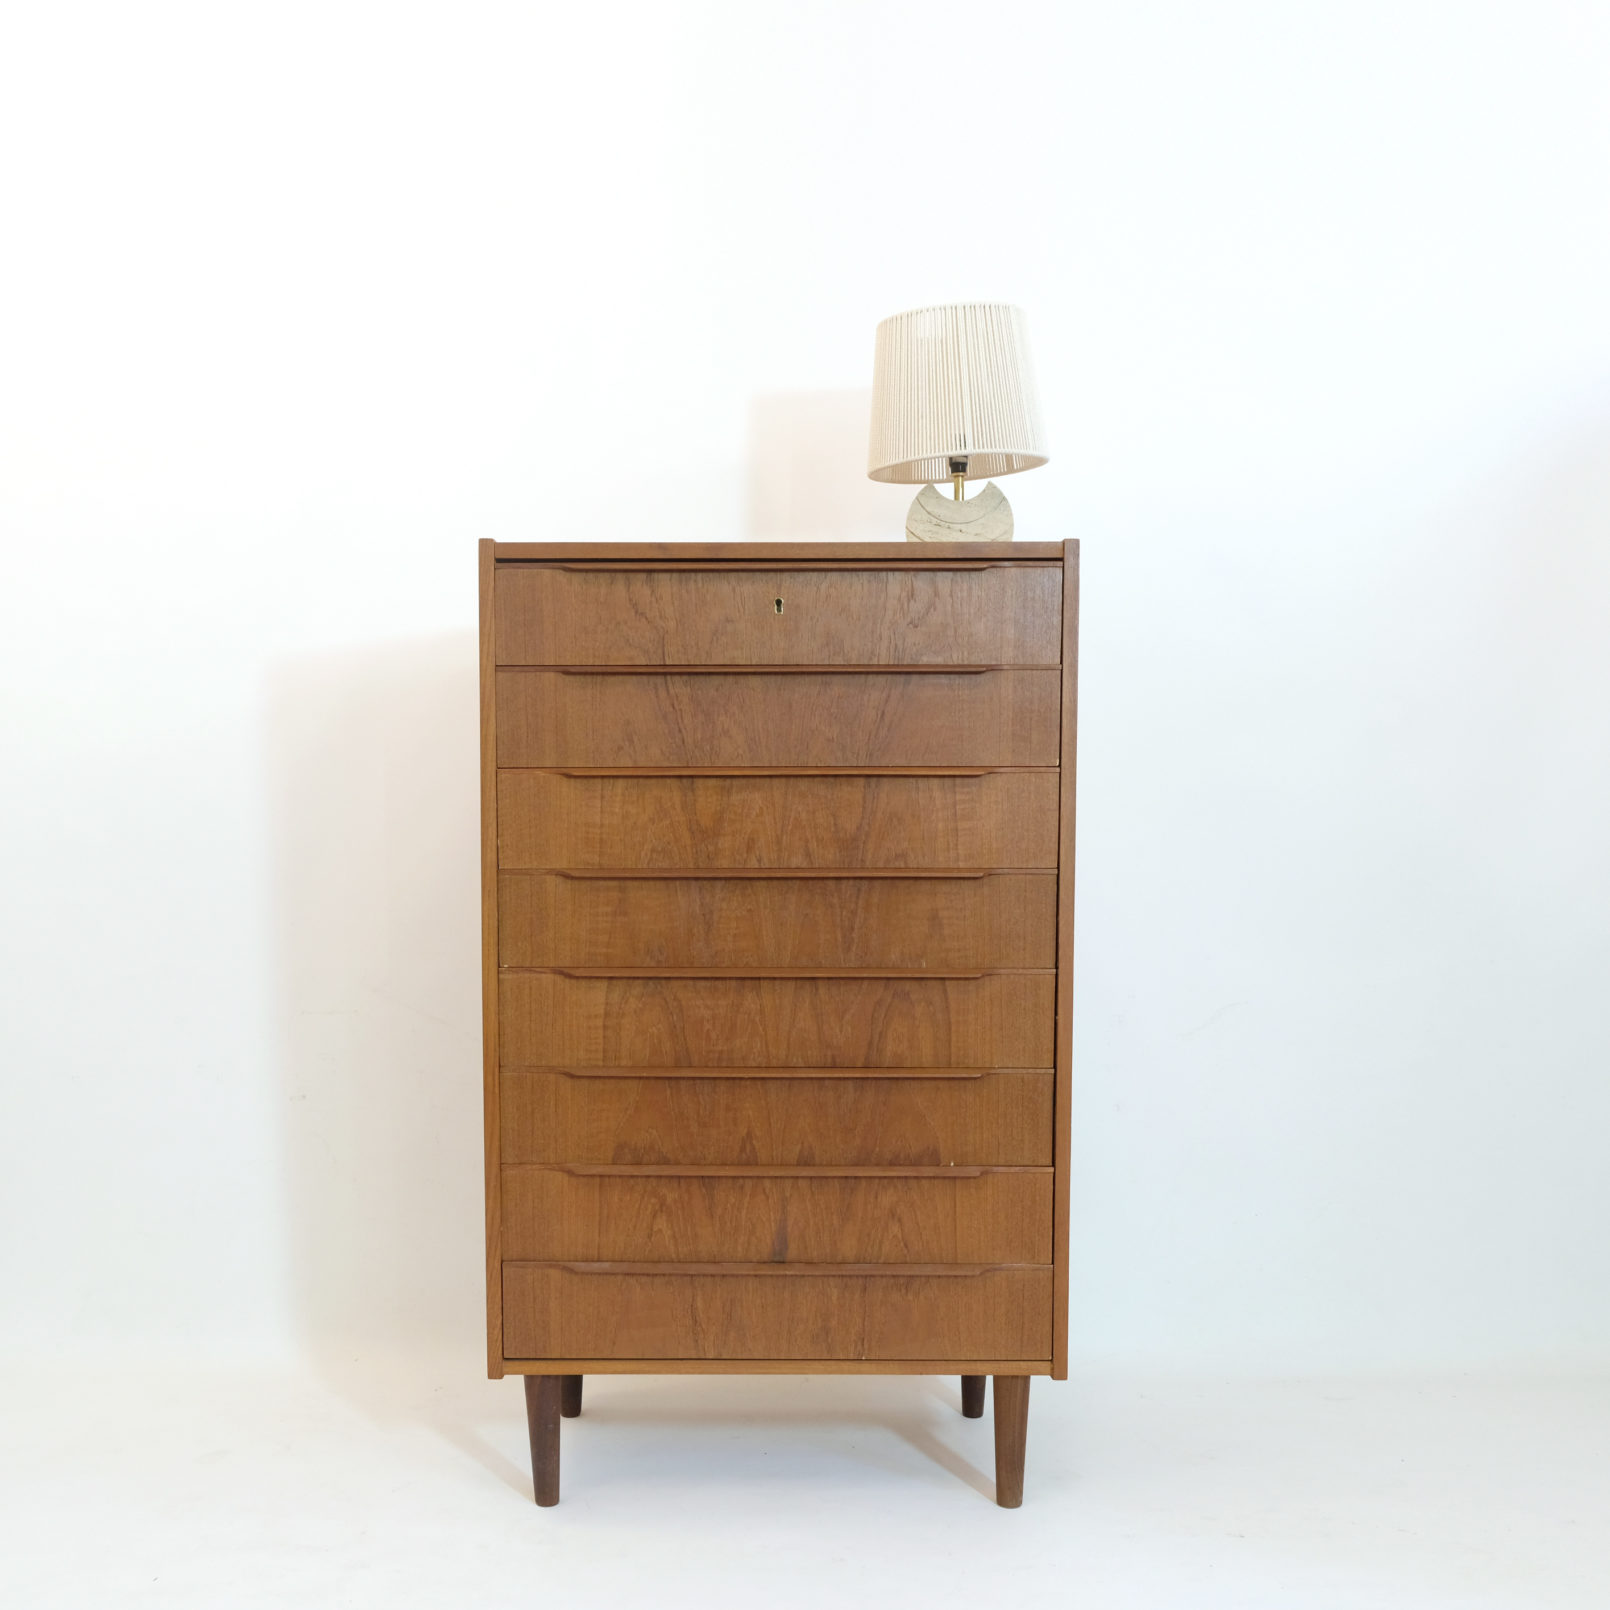 Gorgeous chest of drawers, Denmark, 1960s.